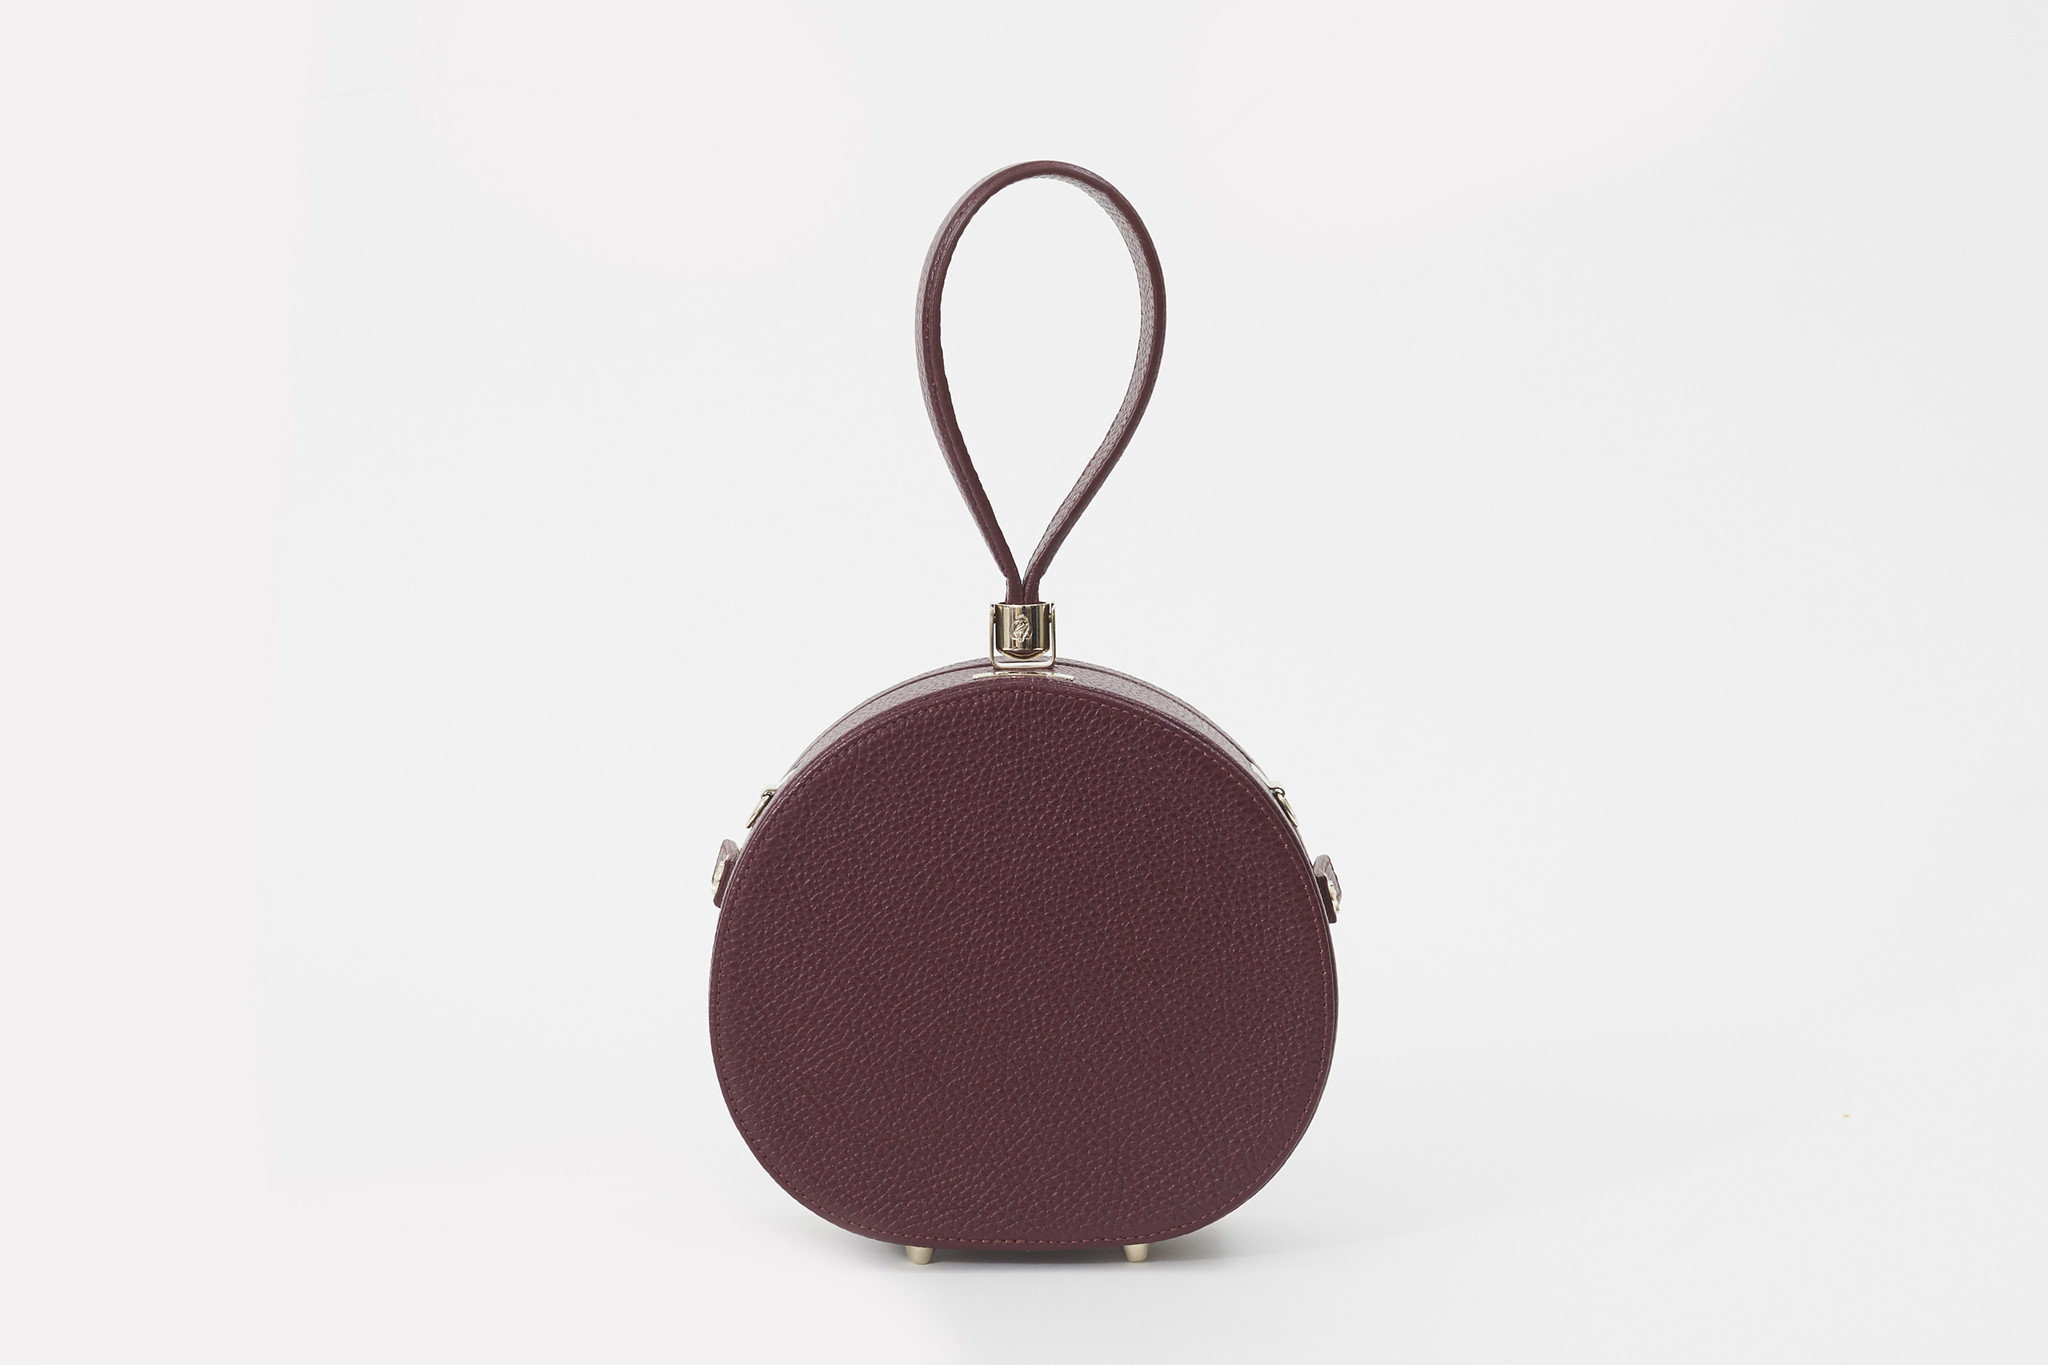 Freya's Demi Poppy Round Leather Bag.